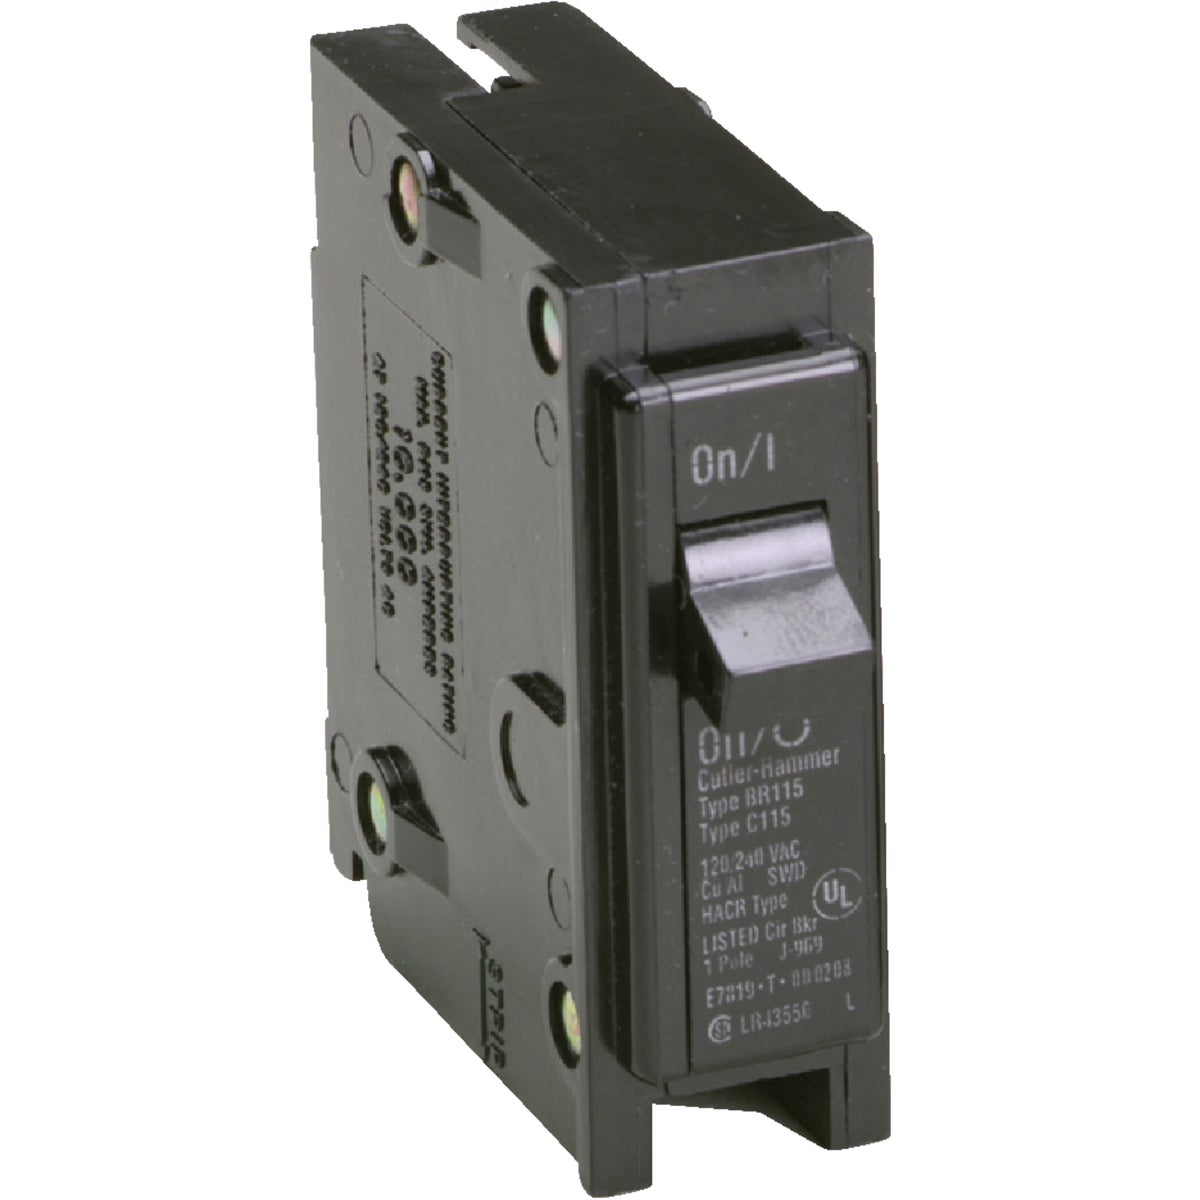 15A SP CIRCUIT BREAKER - BR115 by Eaton Corporation